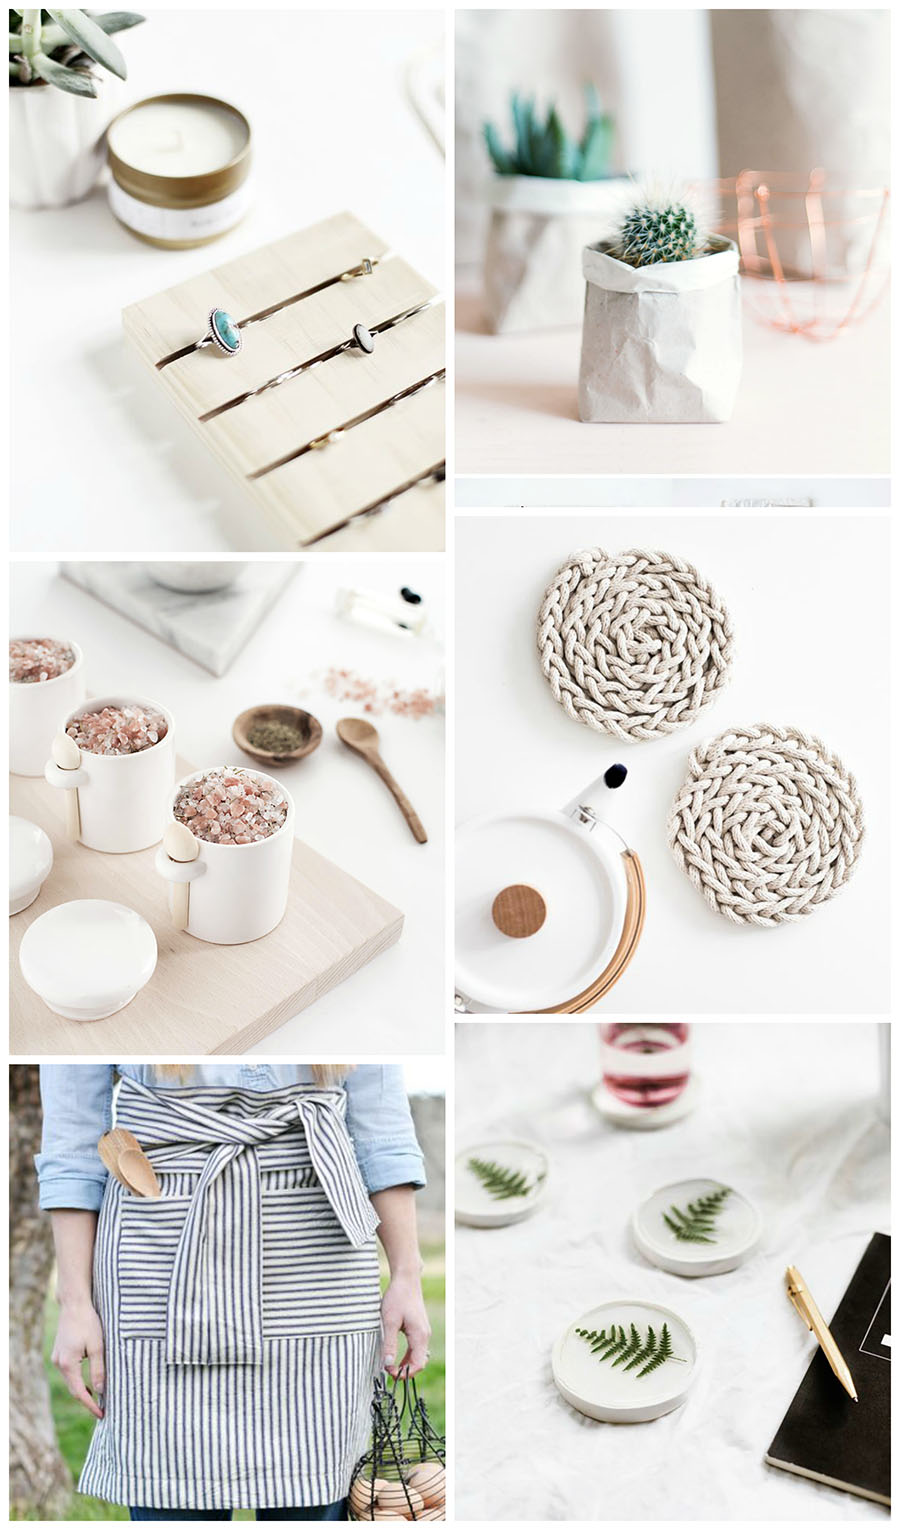 10 diy mothers day gift ideas Mothers day presents diy